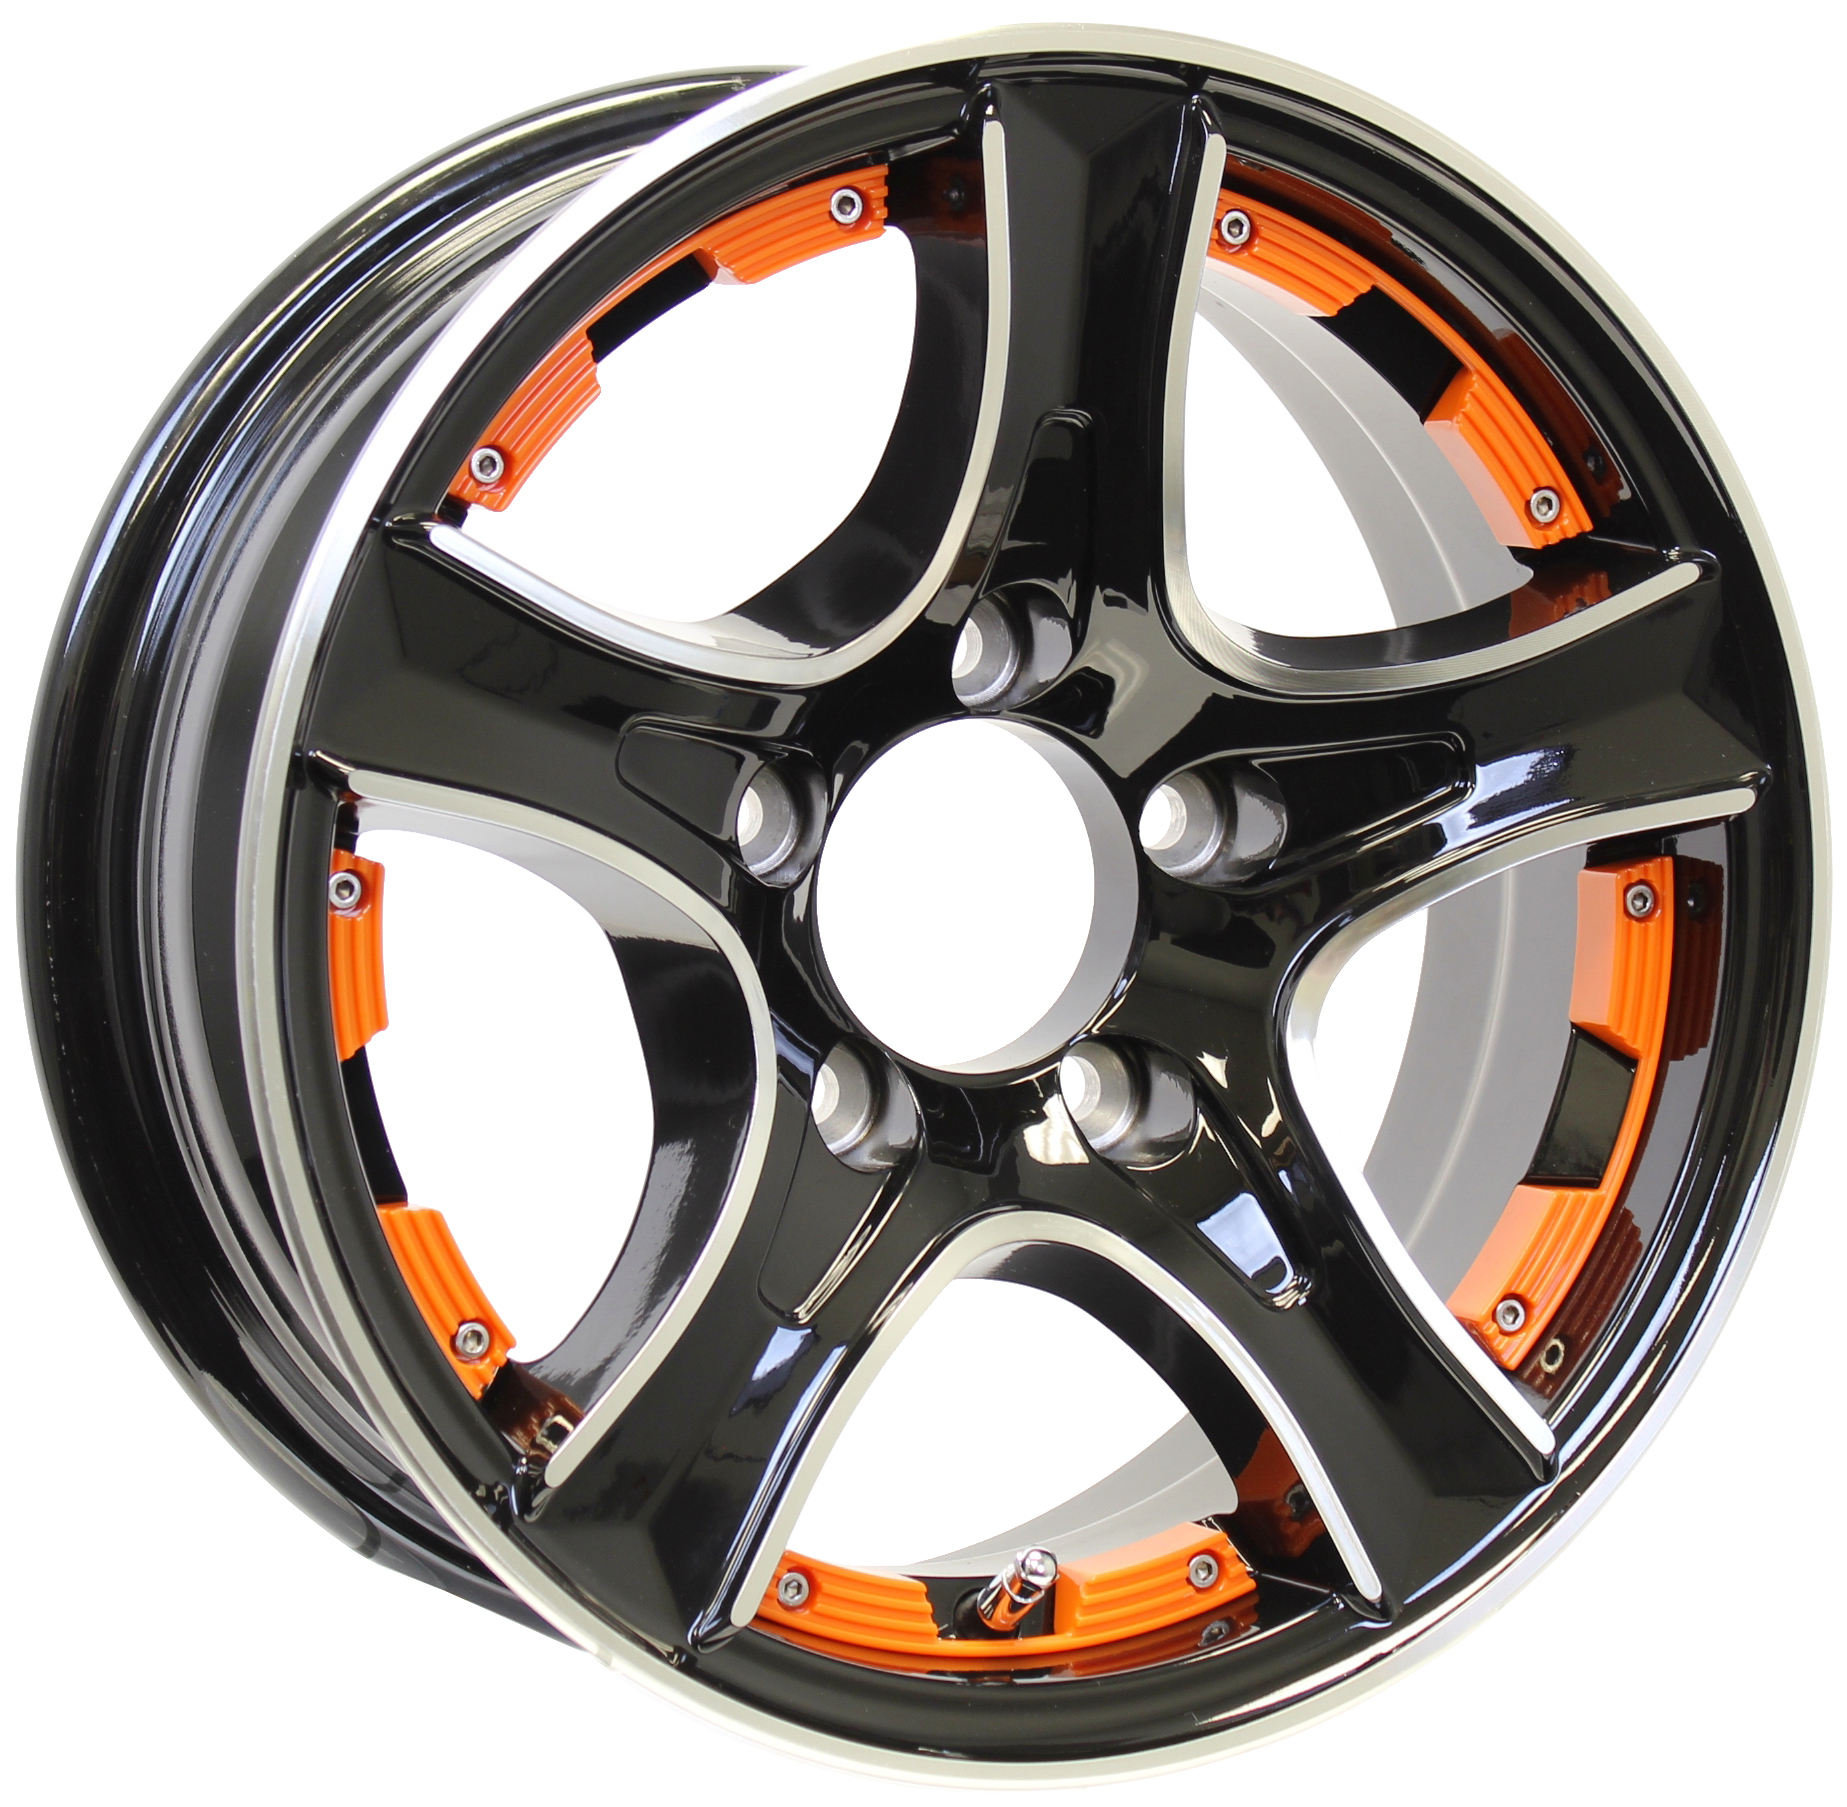 Thoroughbred 14x5.5 5-Lug Black Aluminum Trailer Wheel with Orange Inserts Image